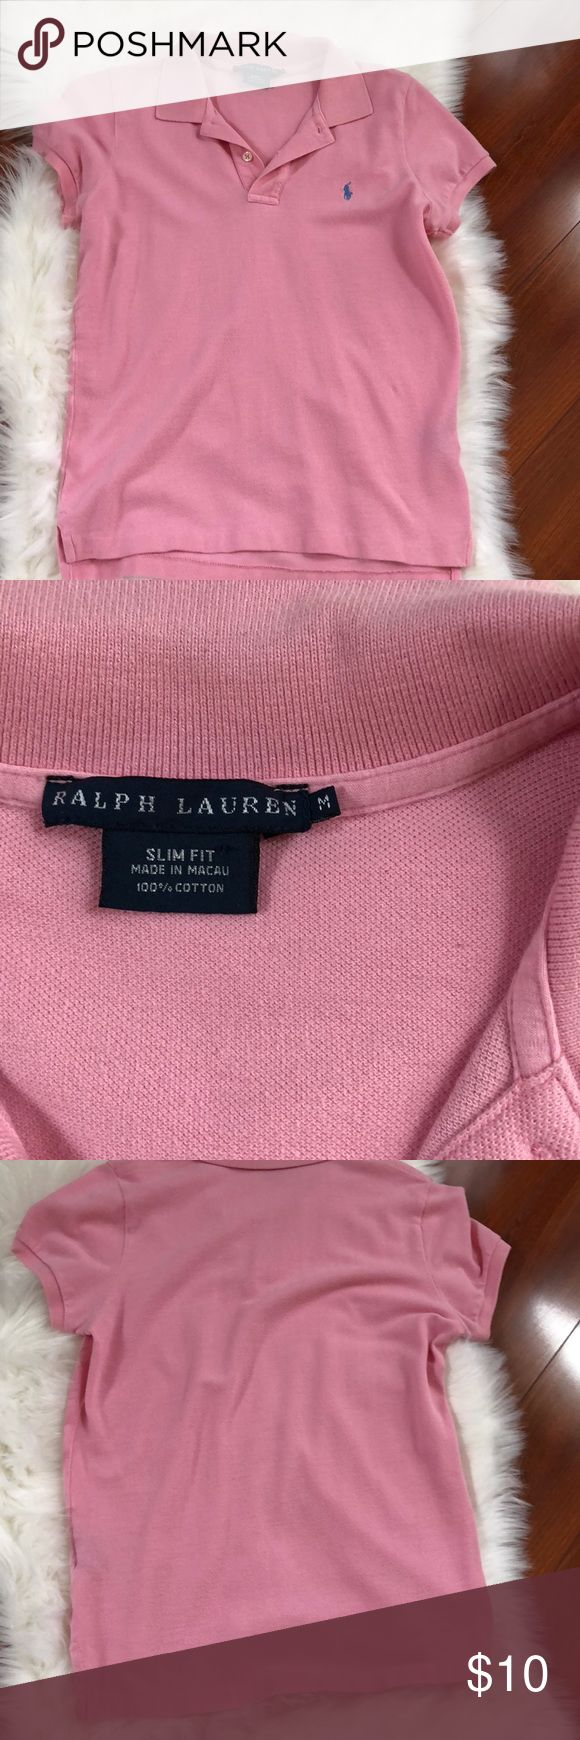 RALPH LAUREN slim fit polo shirt 👚 Preowned condition no stains no holes. This a powder light pink color. Ralph Lauren Tops Tees - Short Sleeve